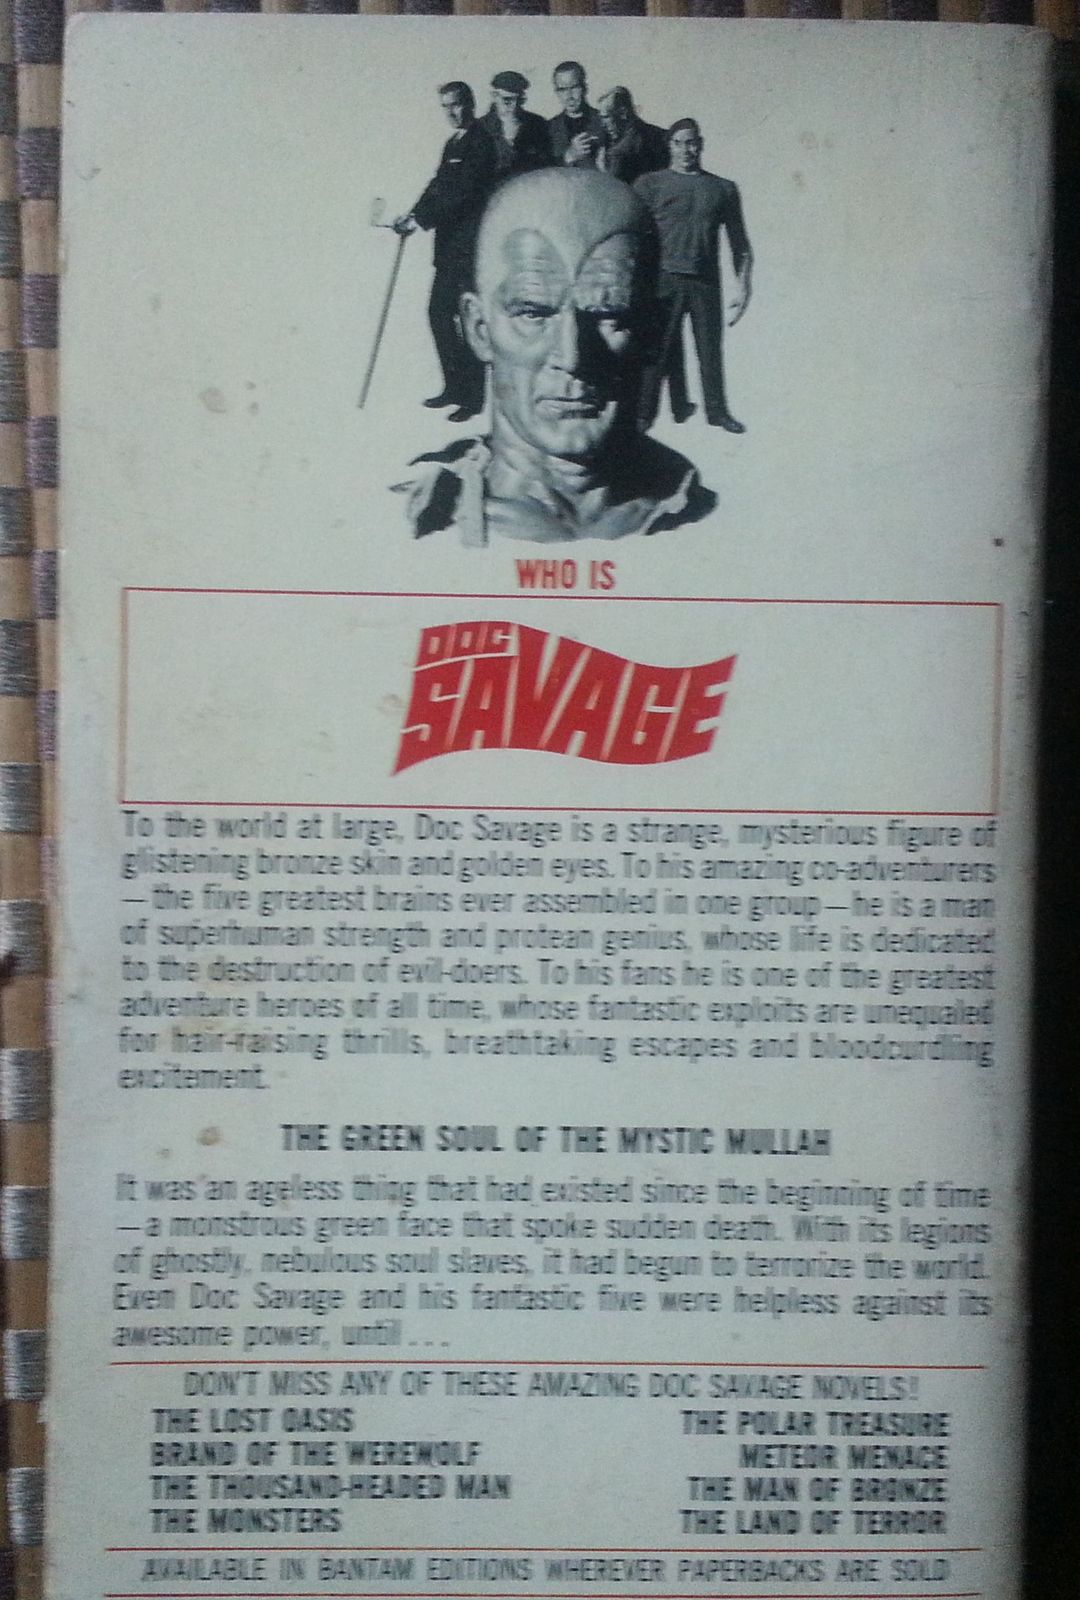 Doc Savage  The Mystic Mullah  by Kenneth Robeson 1965 PB